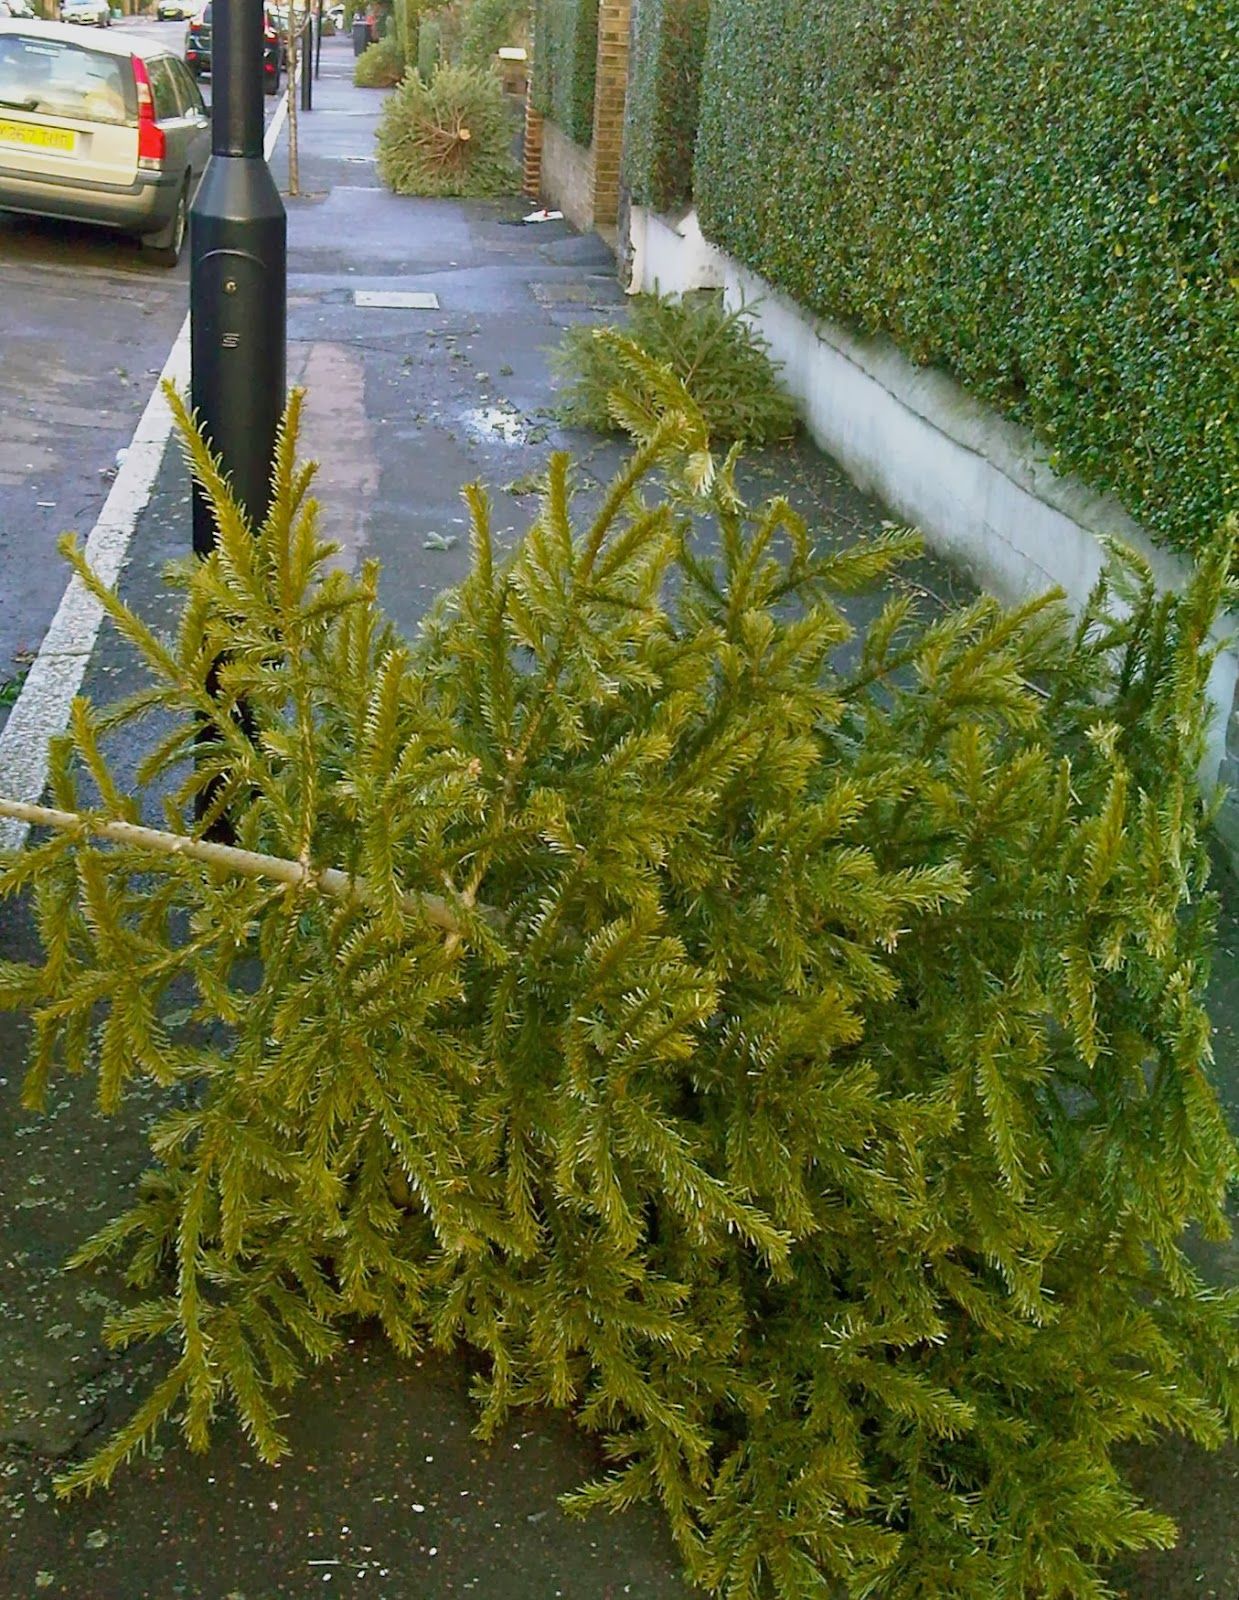 Spruce it is not: Thousands of pounds worth of mutilated Christmas fir-trees are thrown out onto London's streets within month of purchase